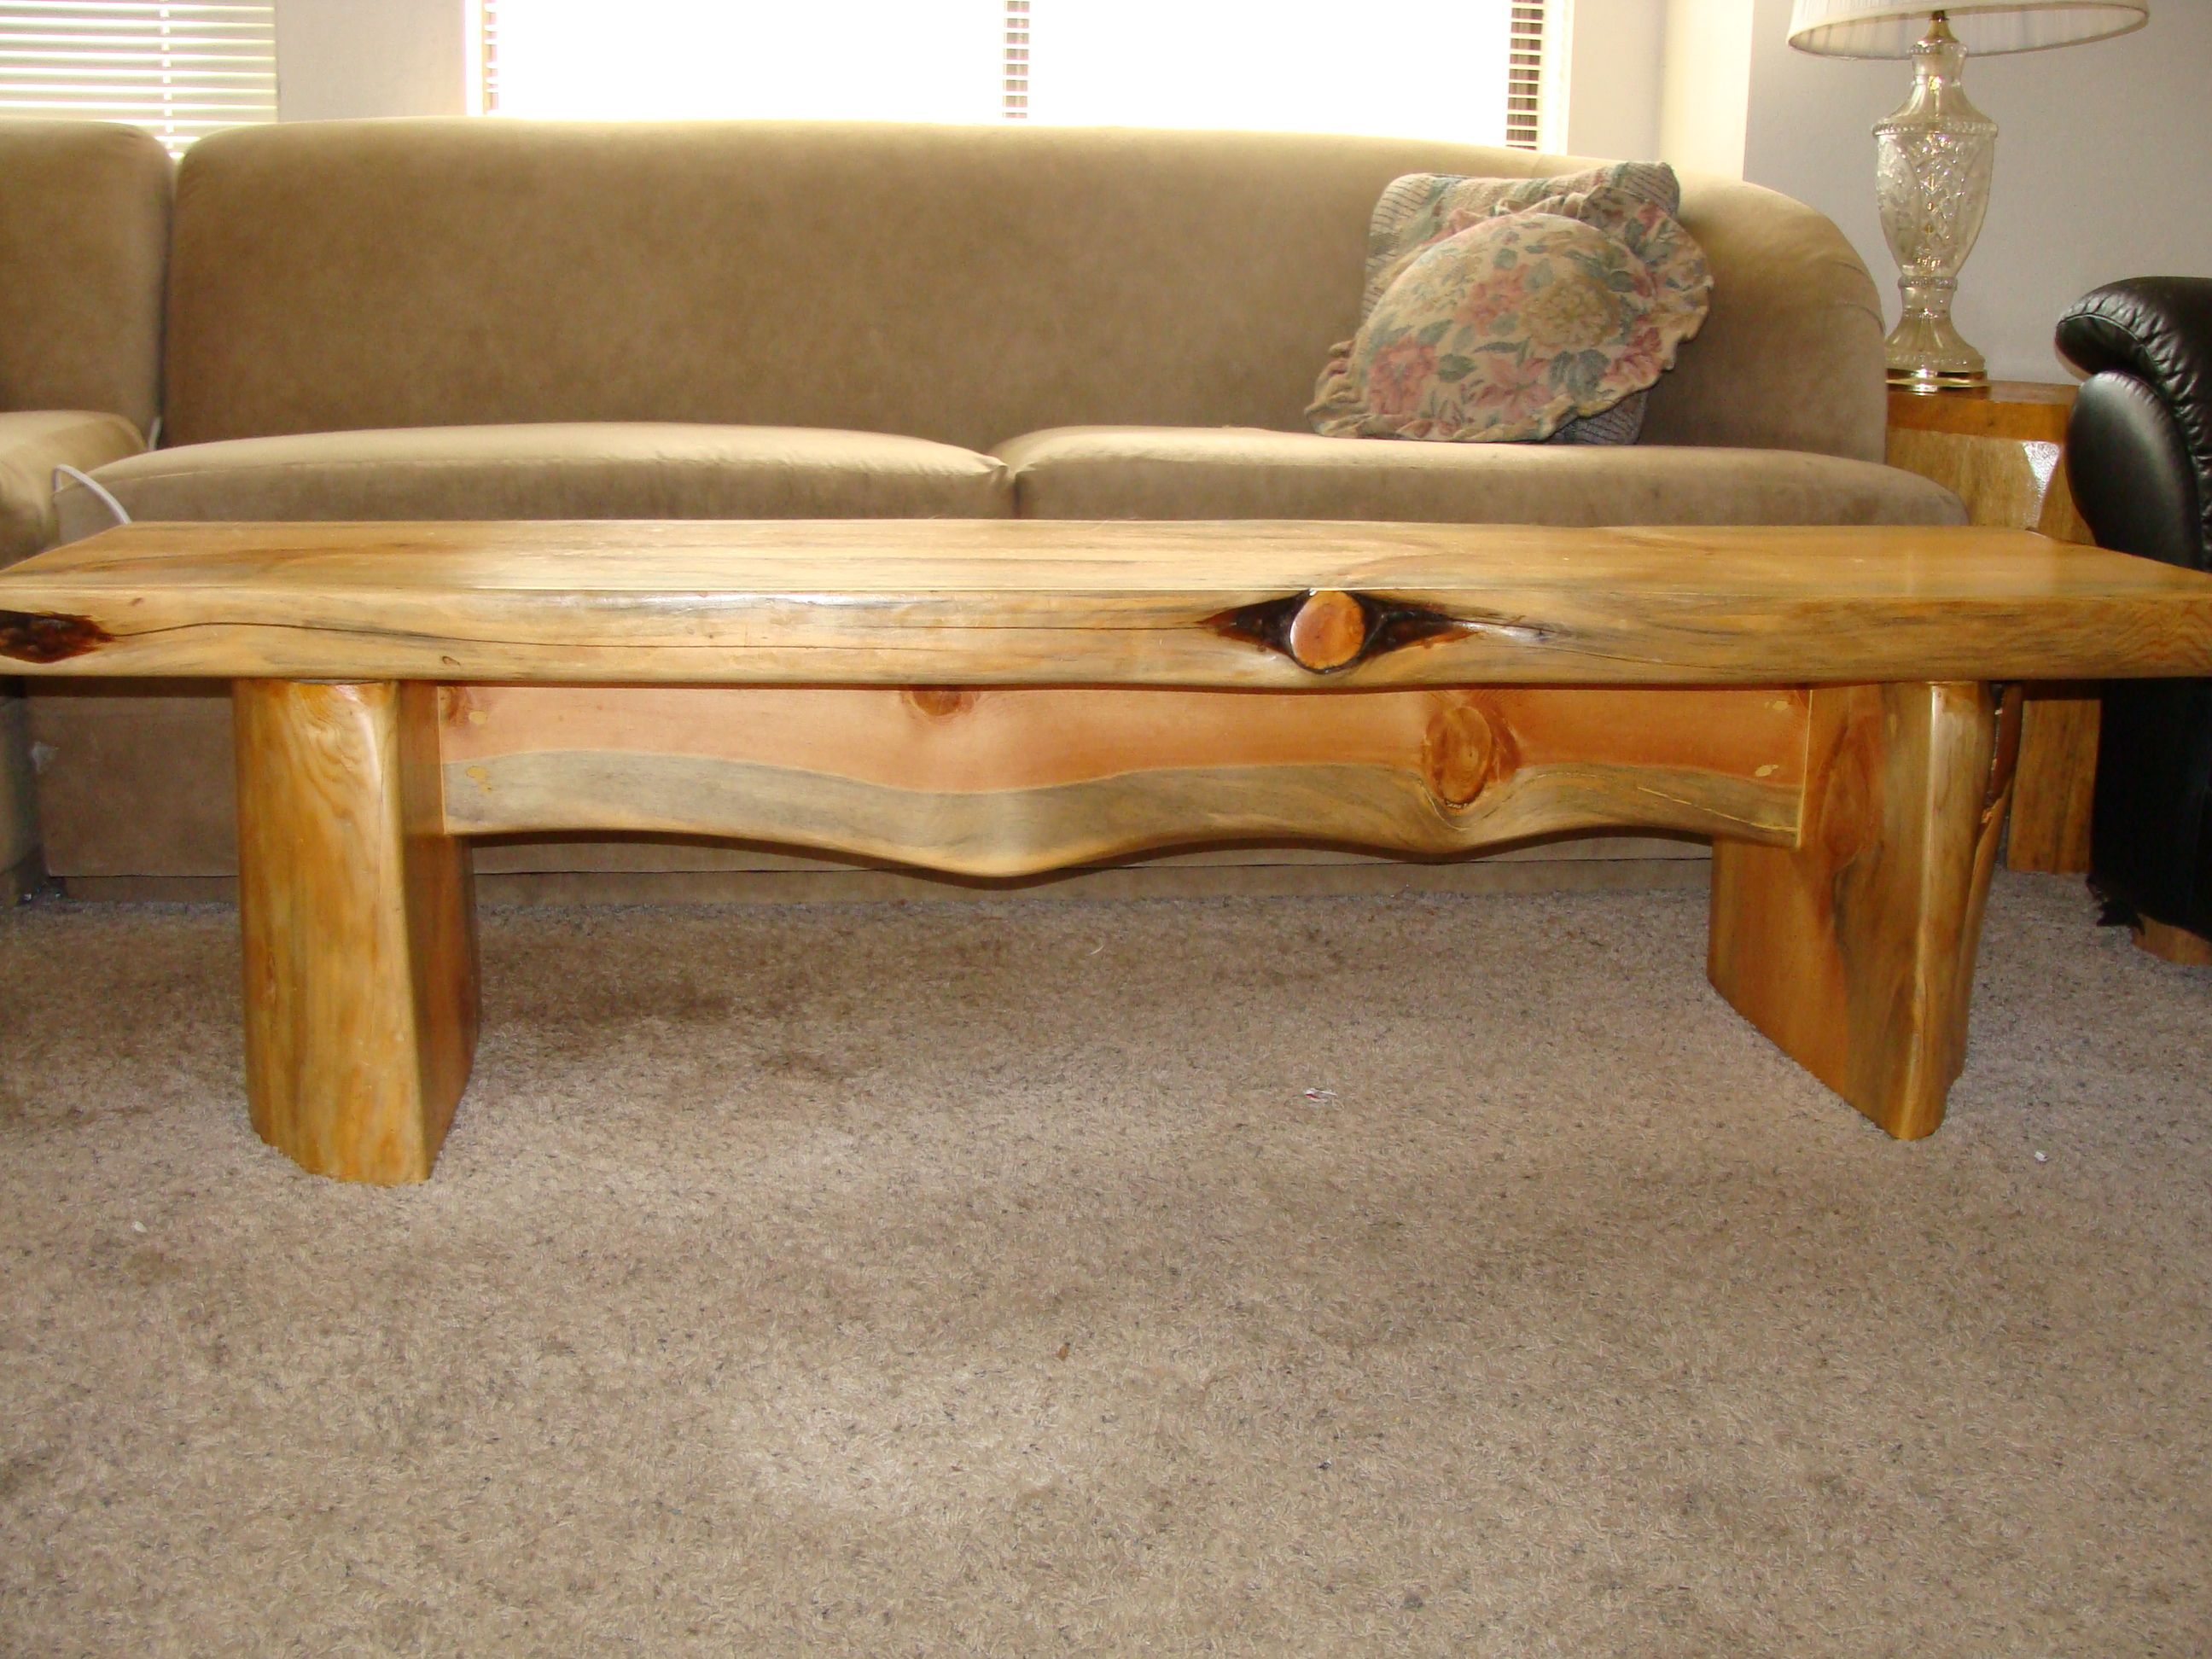 6 39 Knotty Pine Coffee Table View 2 Log Furniture Pinterest Pine Coffee Table Knotty Pine